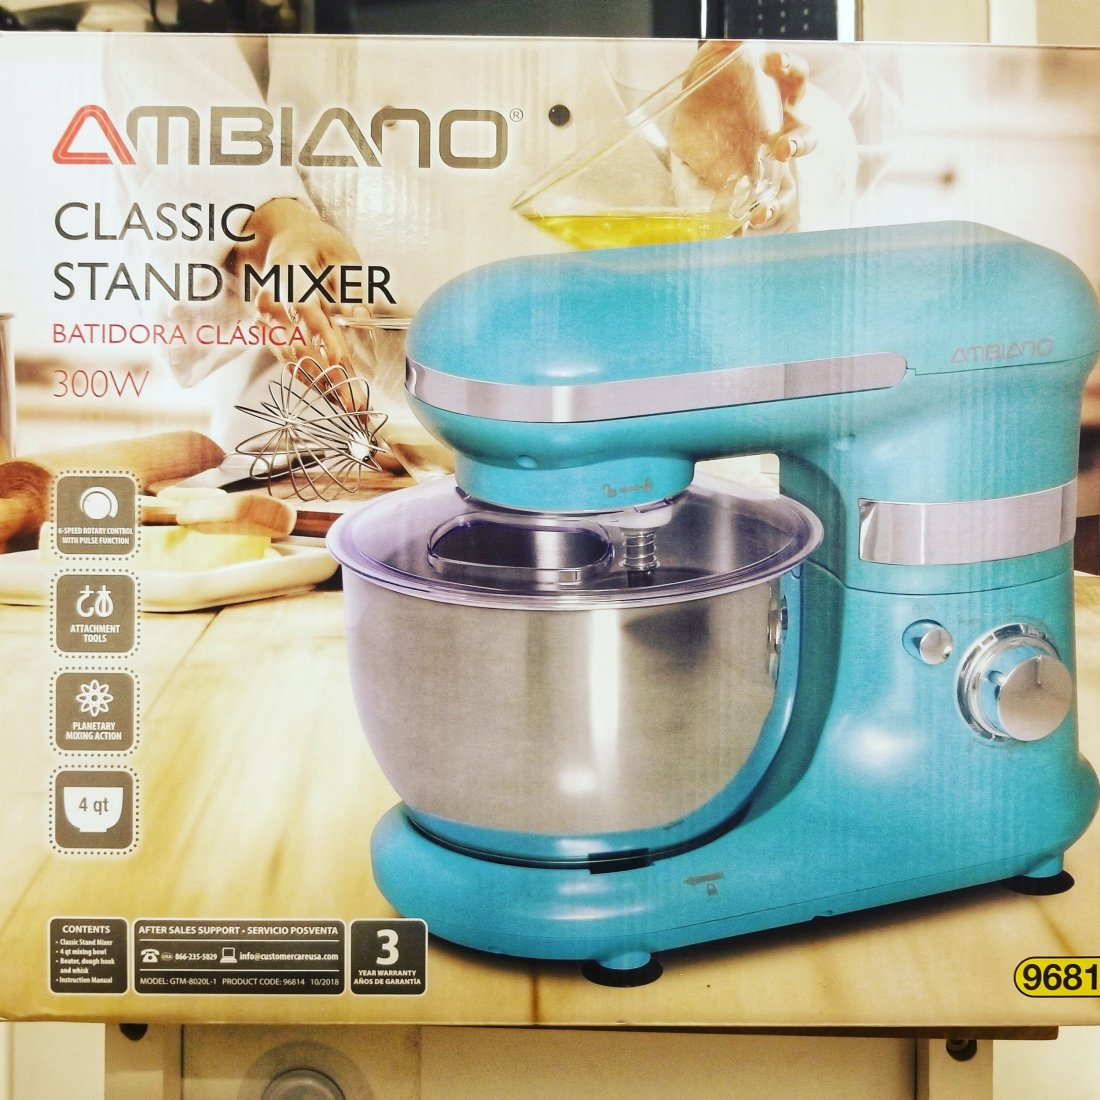 The ALDI Stand Mixer (I got one, and it's even better than